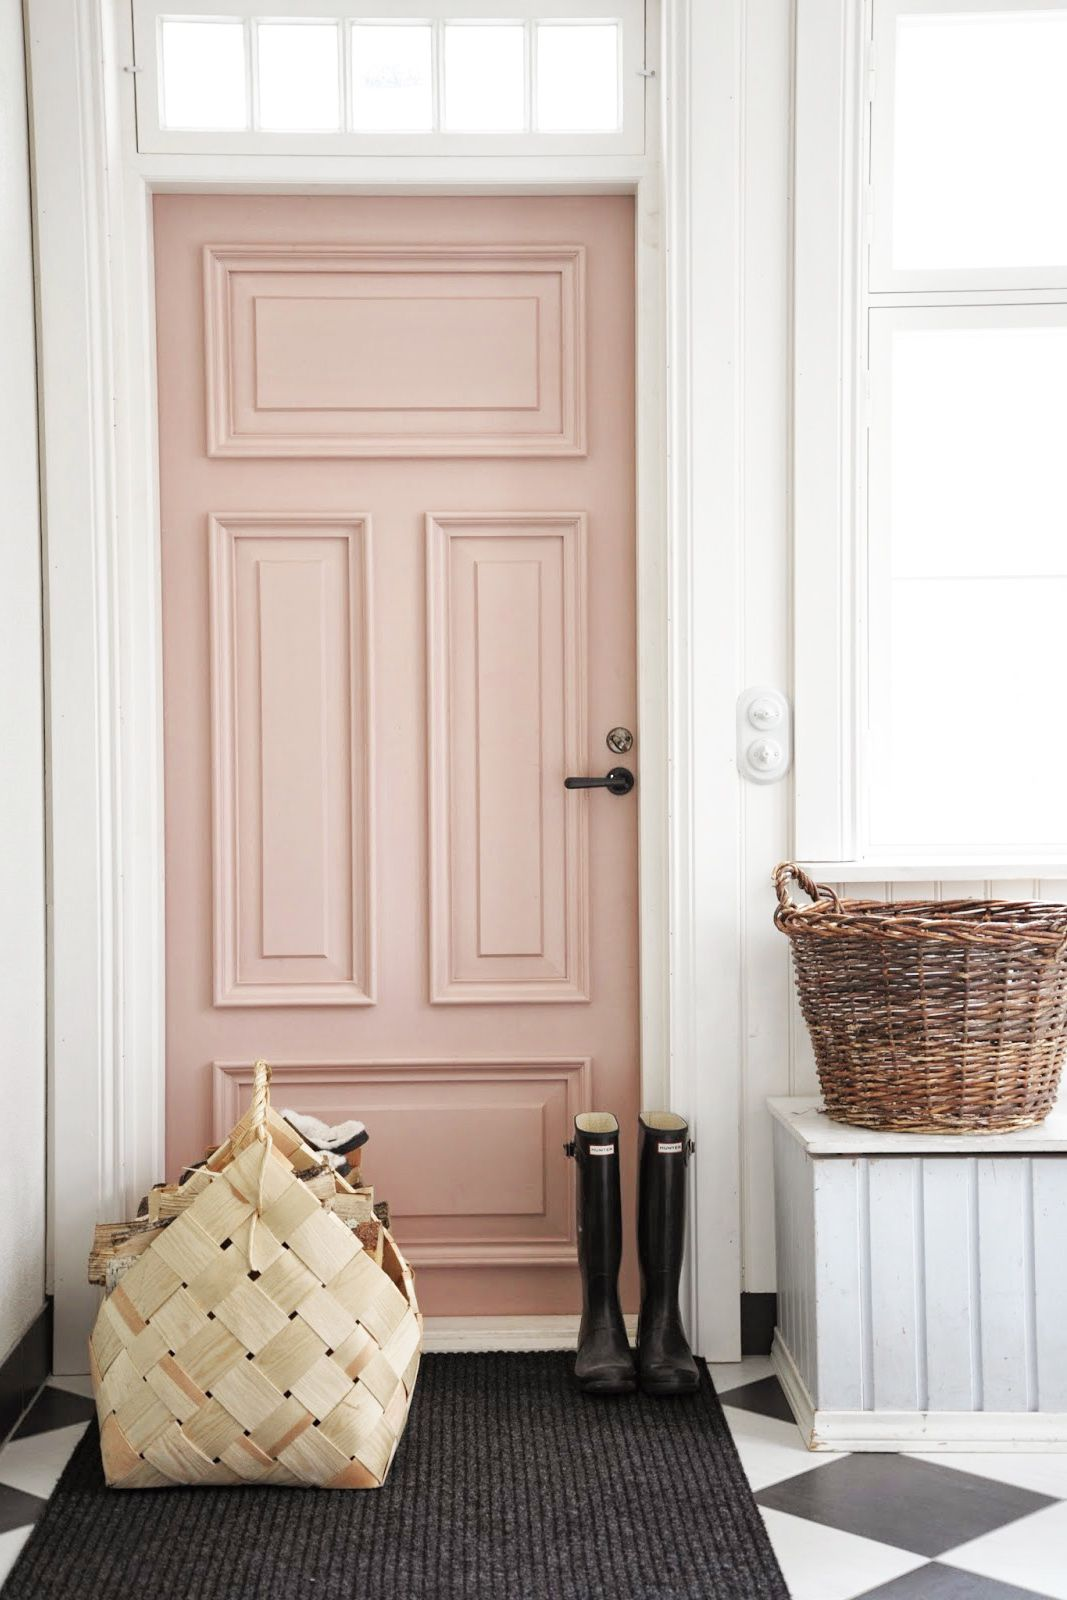 Rose door inside home with tiled black and white floors